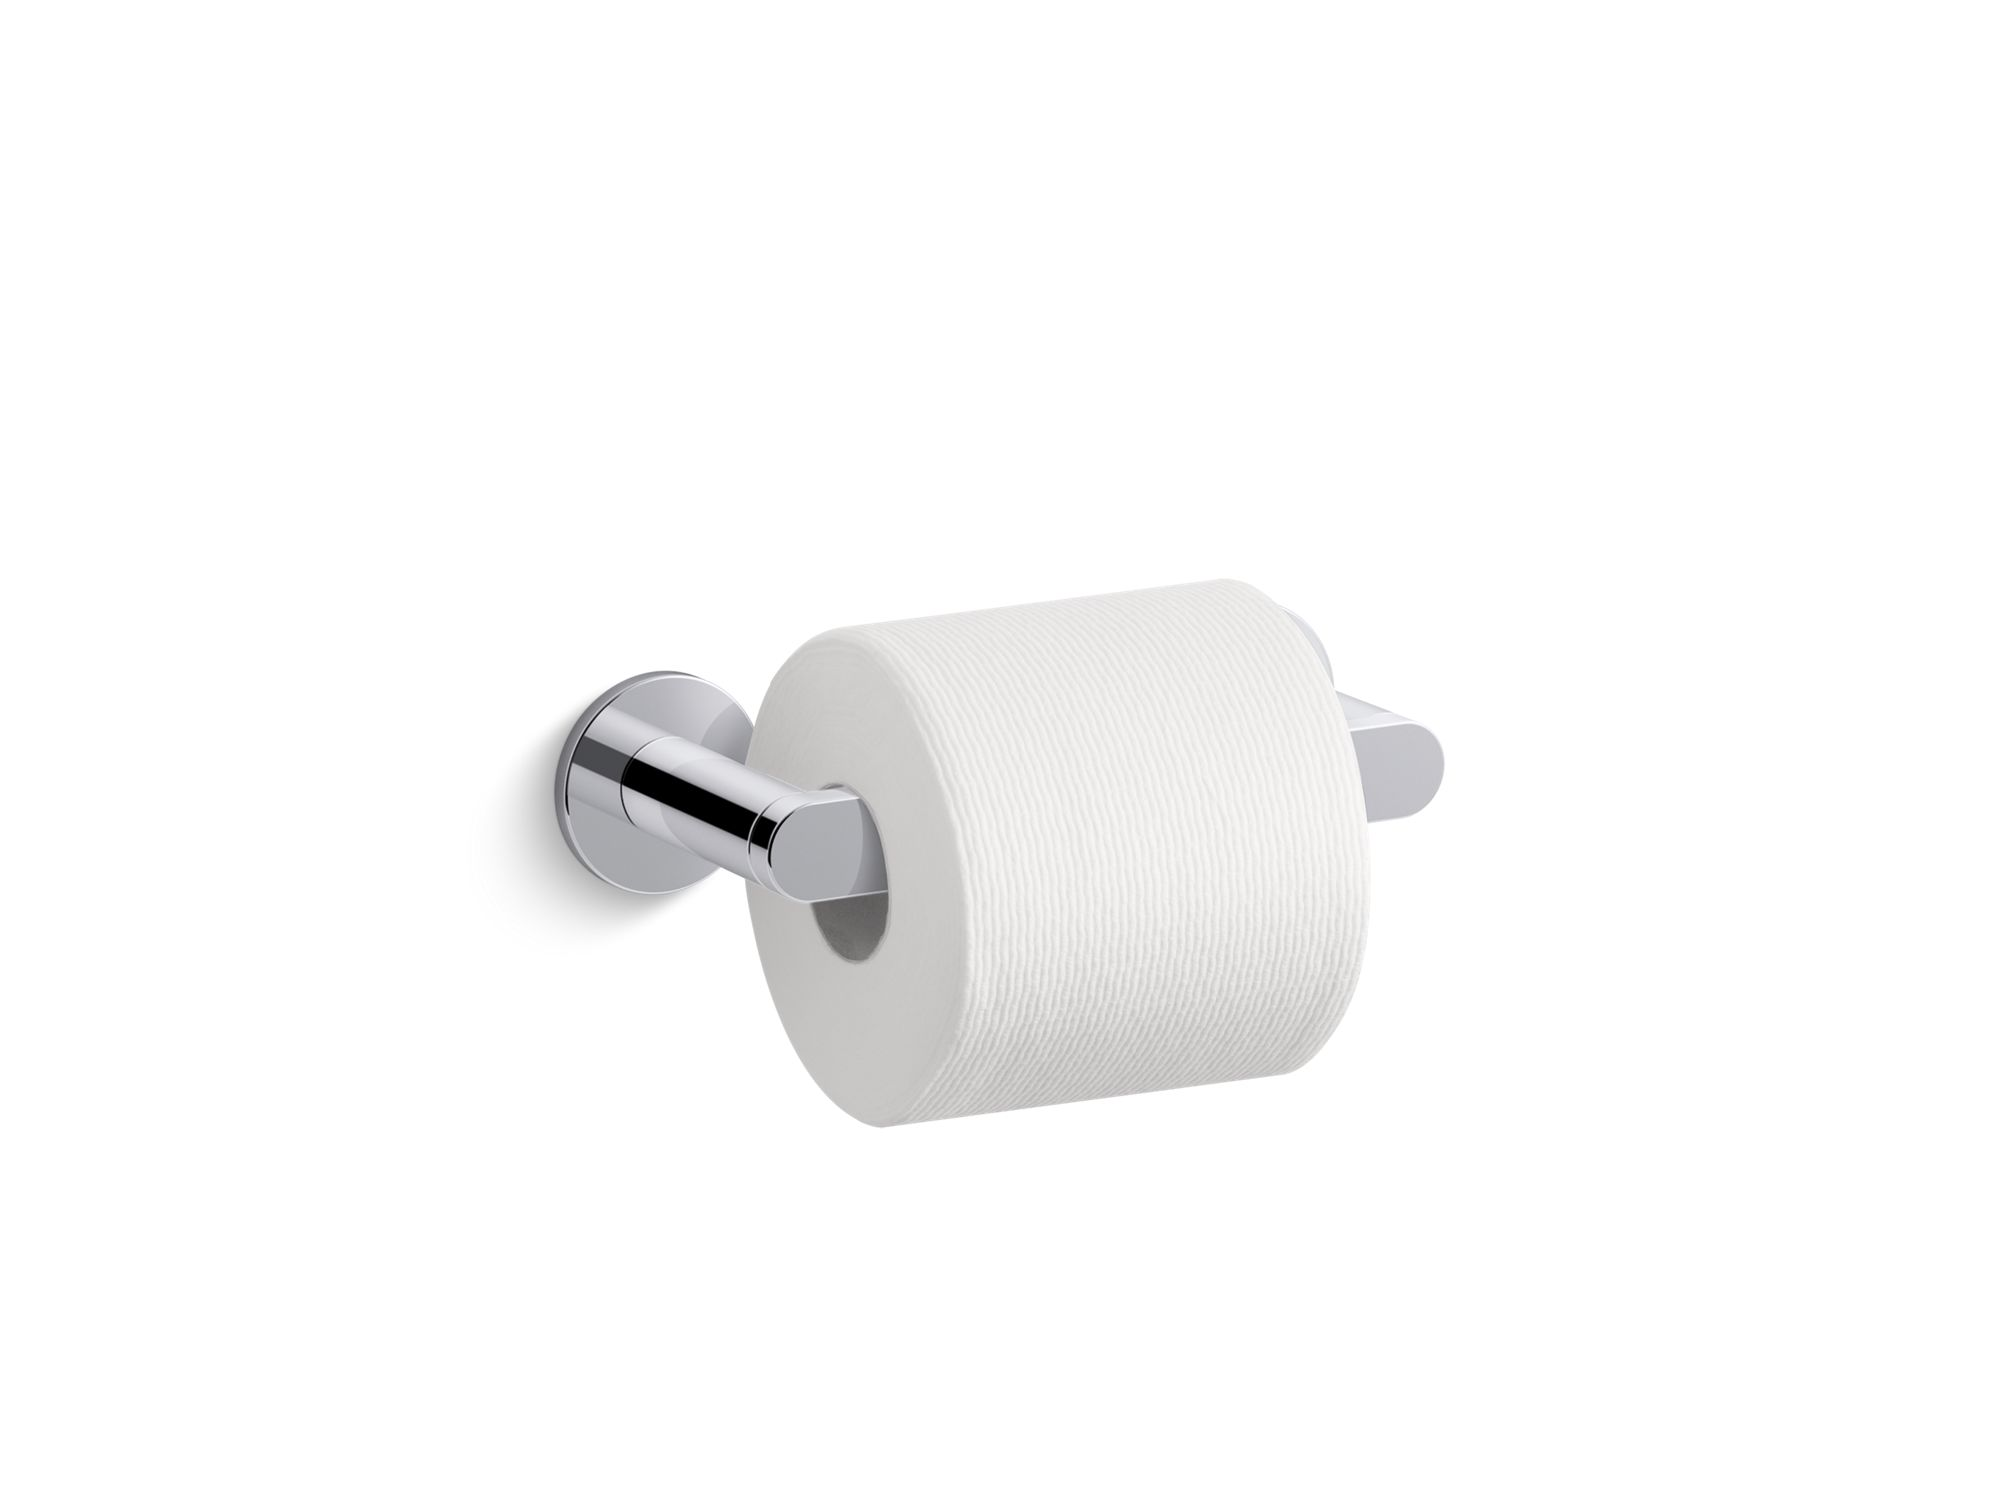 Kohler Composed Toilet Tissue Holder 73147-CP-73147-CP